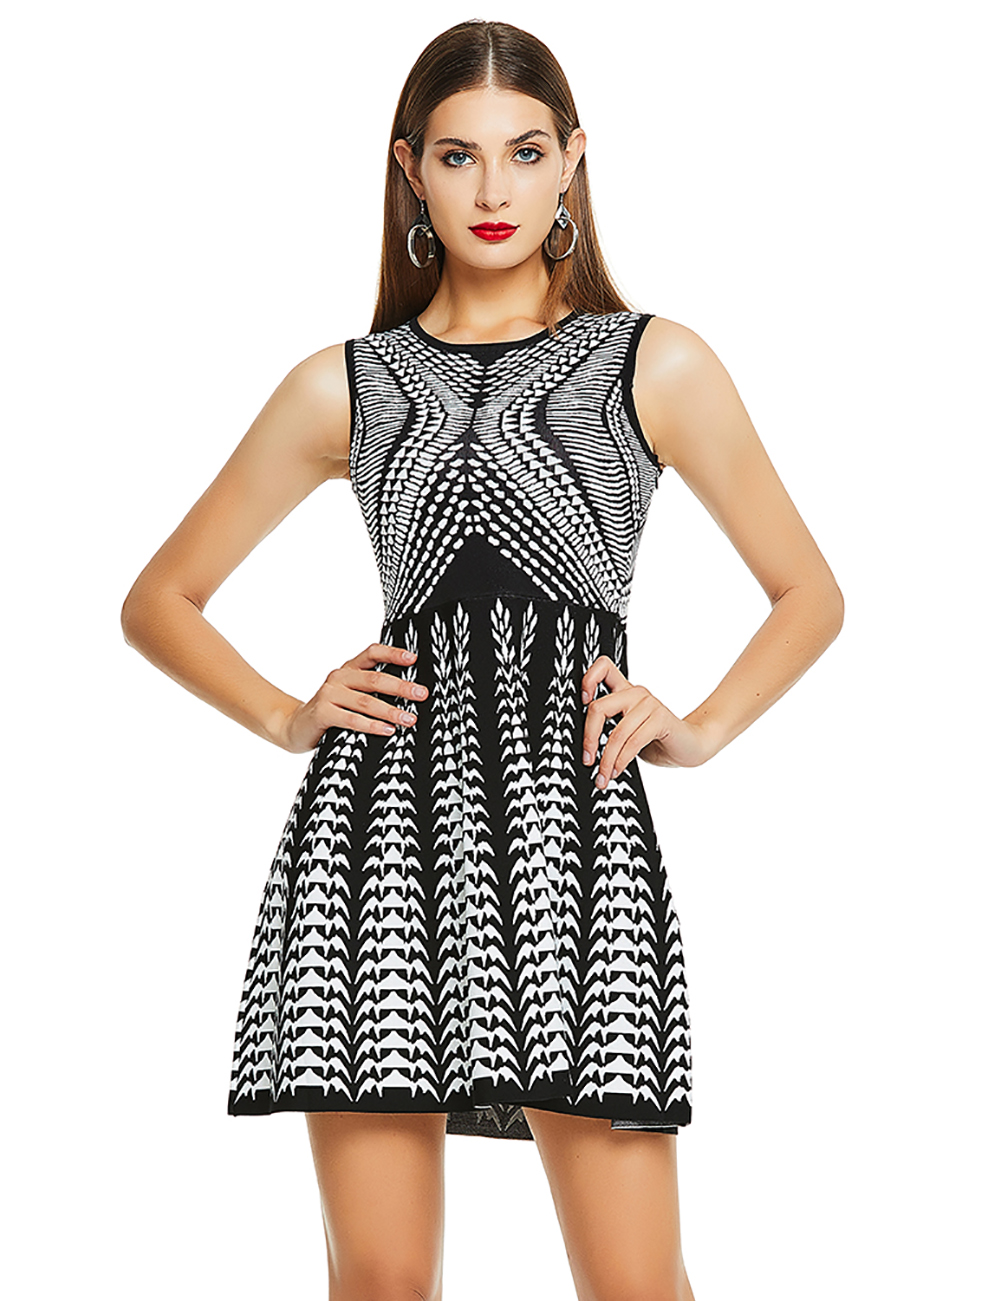 //cdn.affectcloud.com/feelingirldress/upload/imgs/2019-09-06/VZ191016-BK1/VZ191016-BK1.jpg